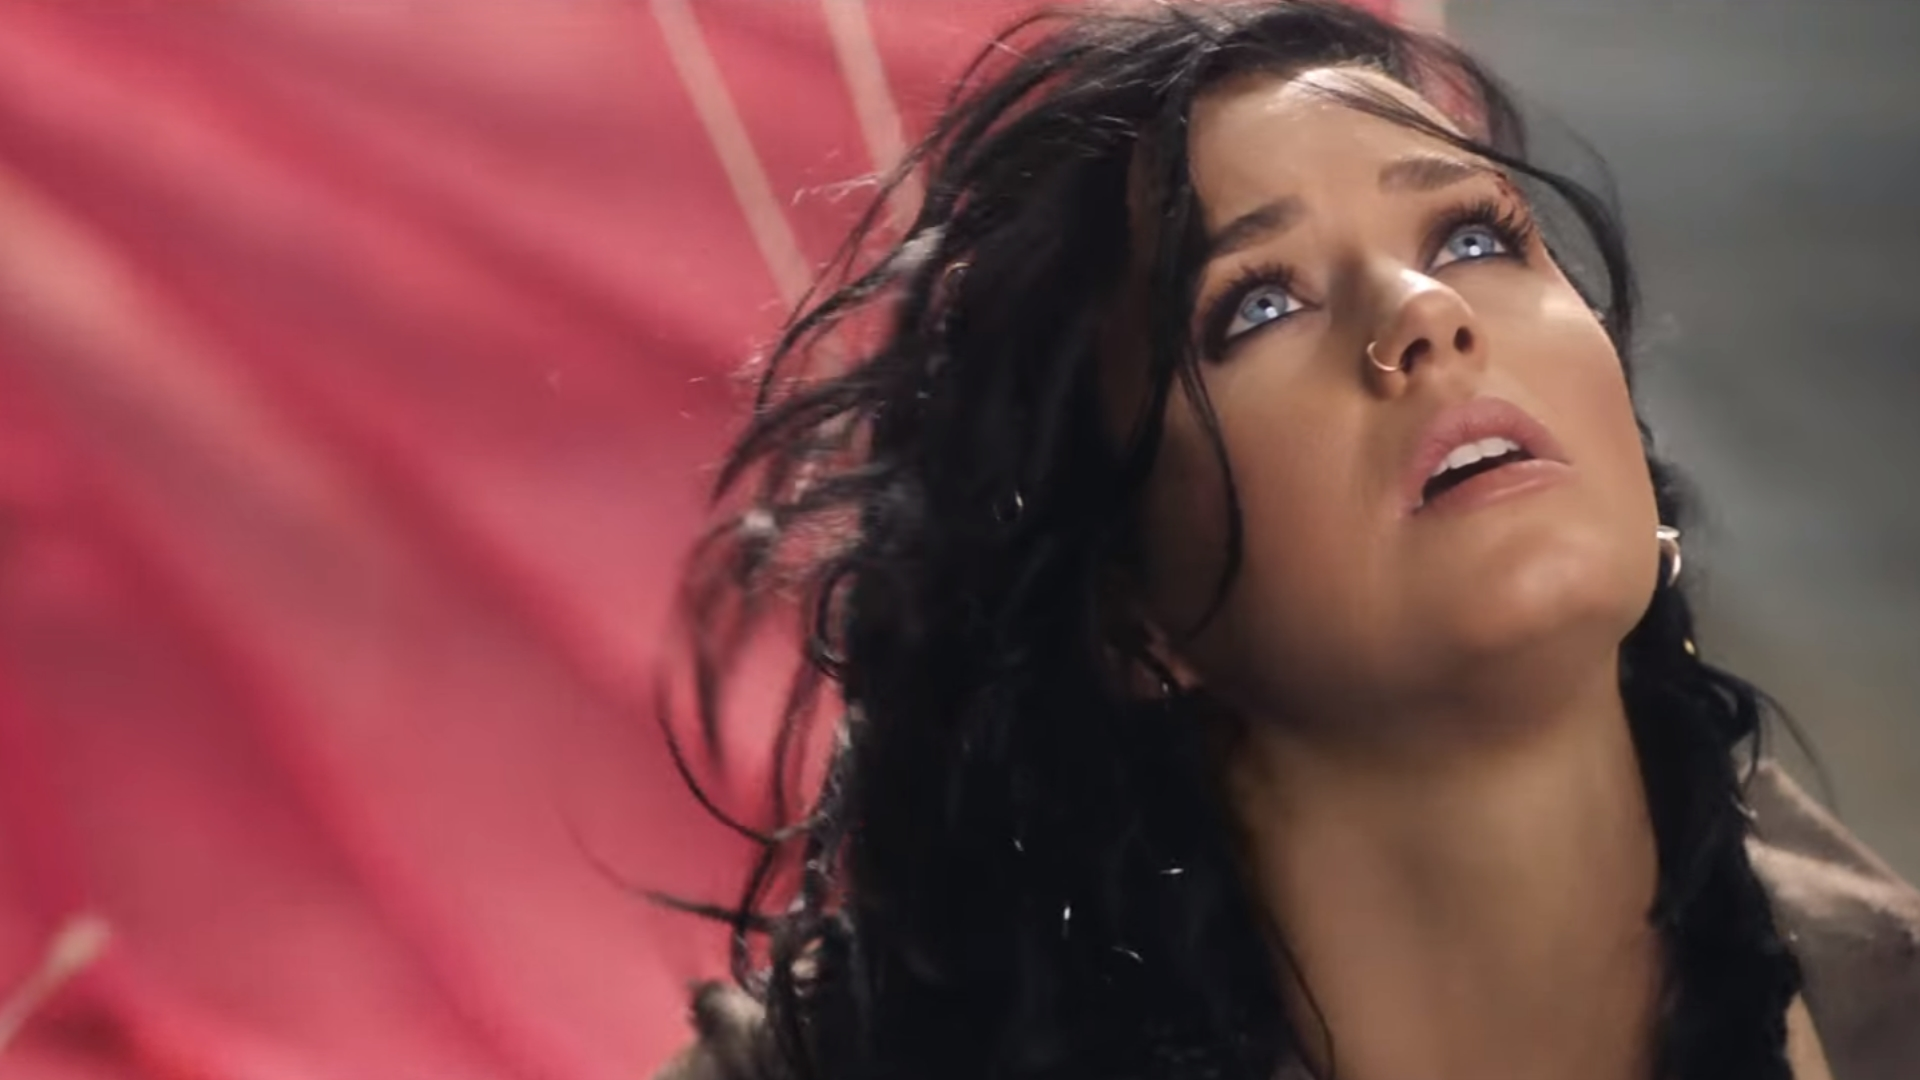 Katy Perry performing Rise